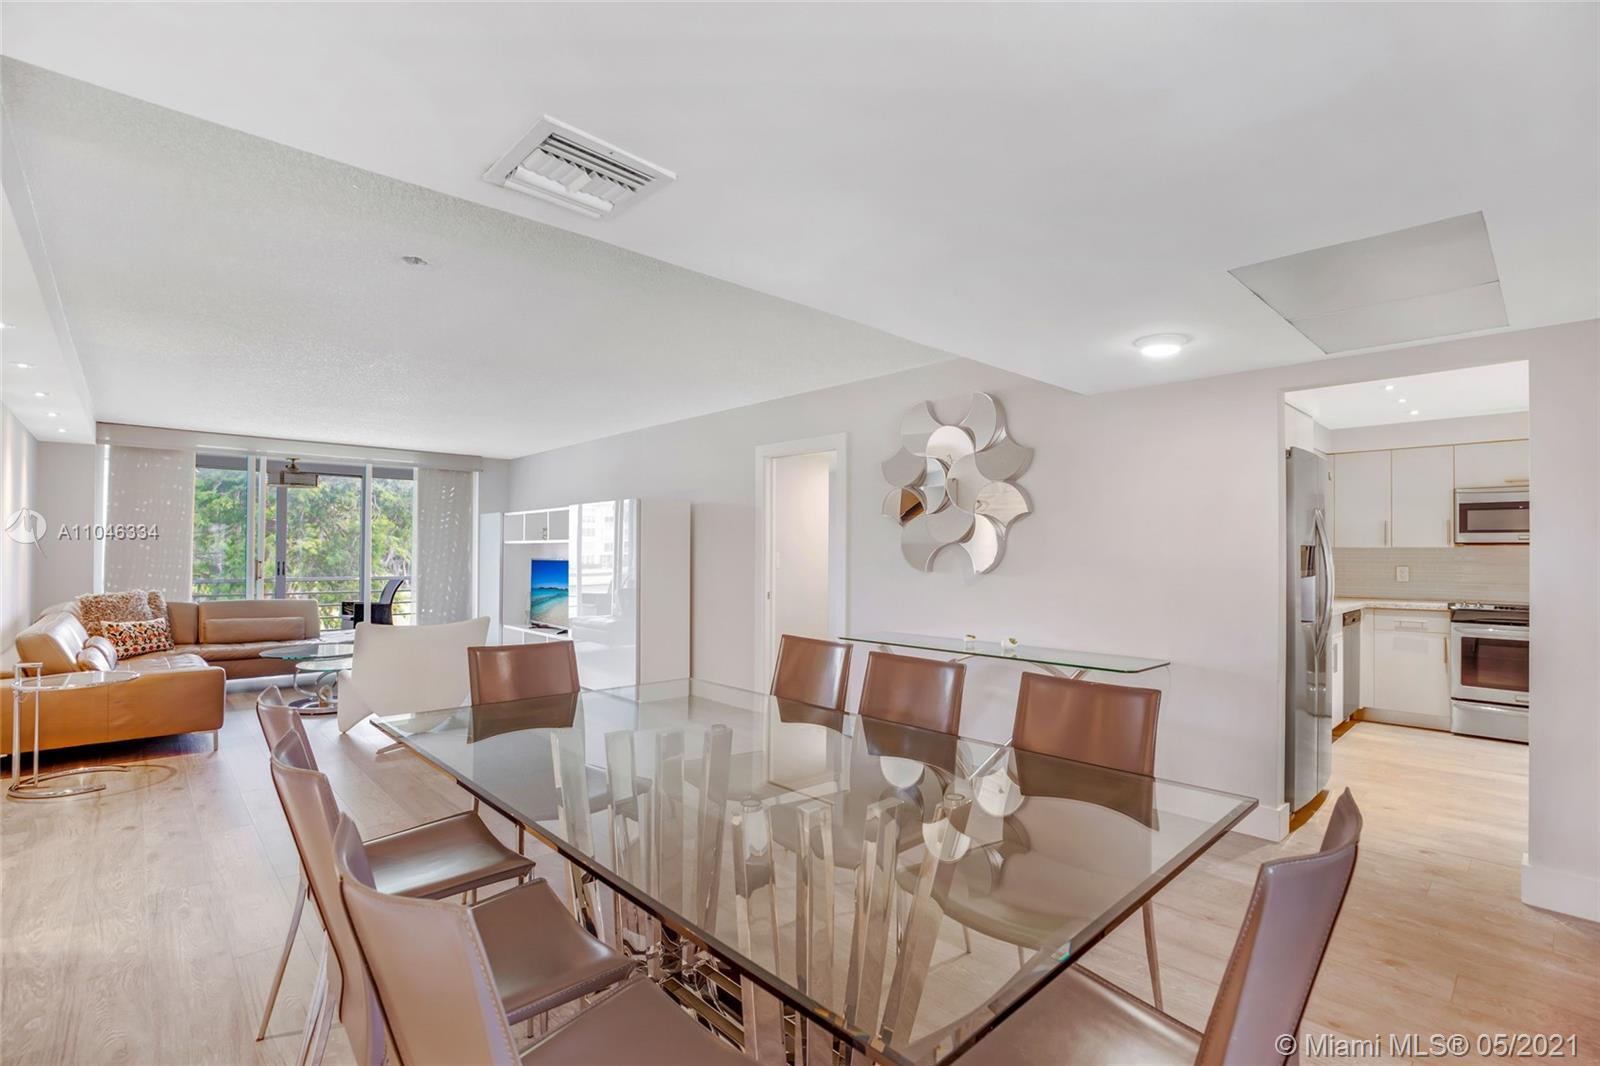 MUST SEE THIS GORGEOUS 3 BEDROOM, 2 BATHROOM 1680 SQ.FT.  THIS UNIT IS LOADED WITH SQ. FT CONTEMPORA